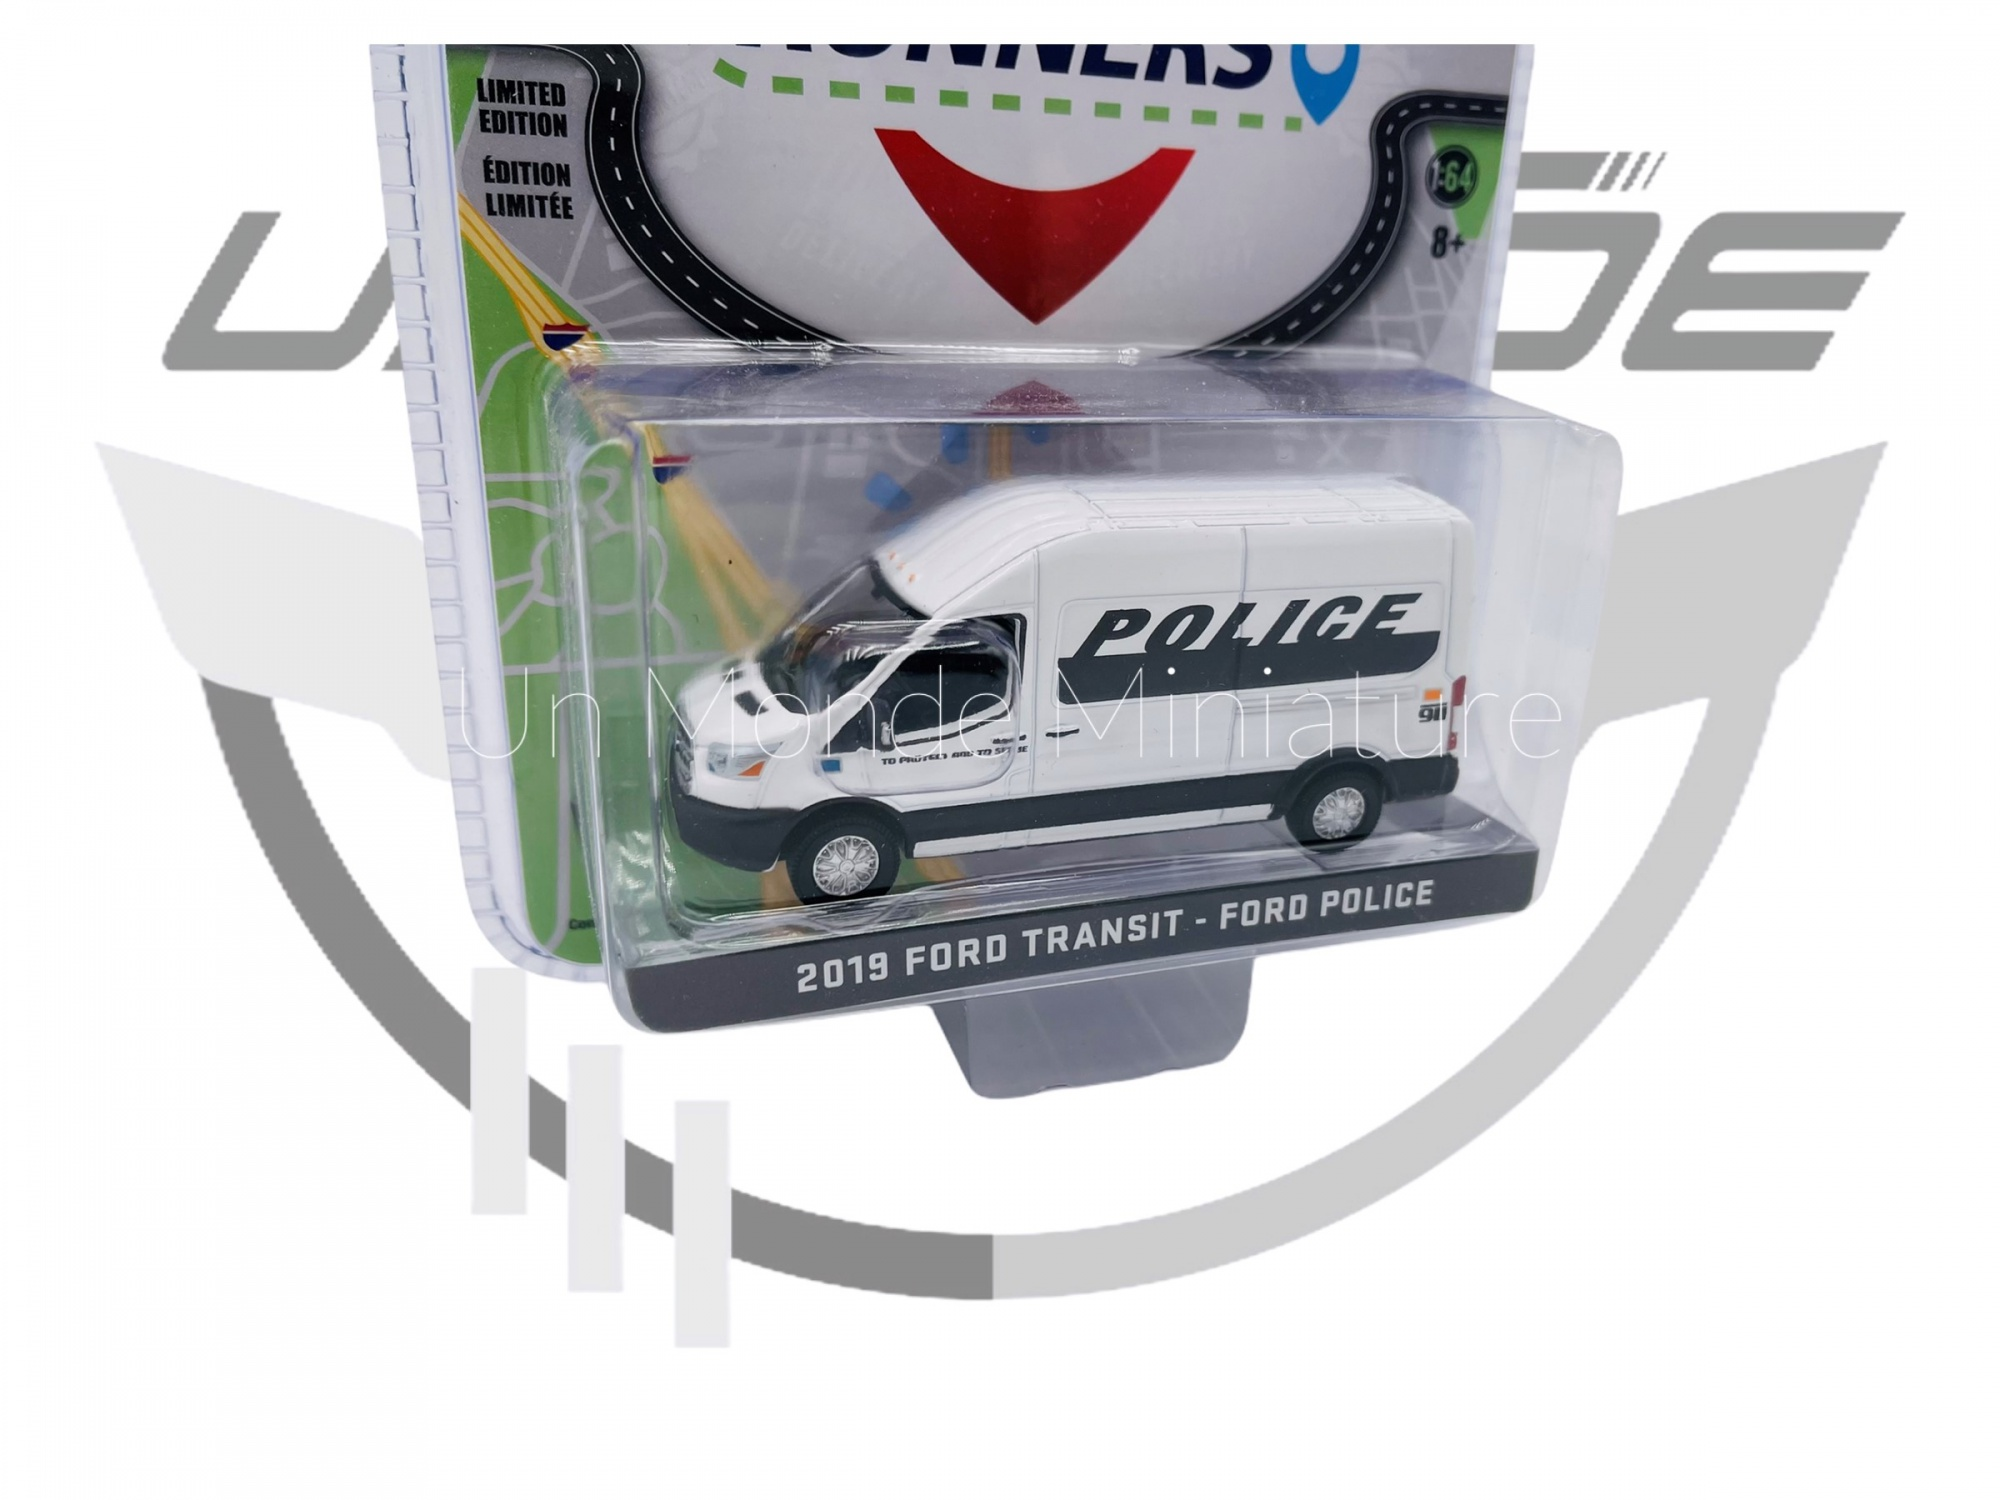 Ford Transit 2019 Ford POLICE Route Runners